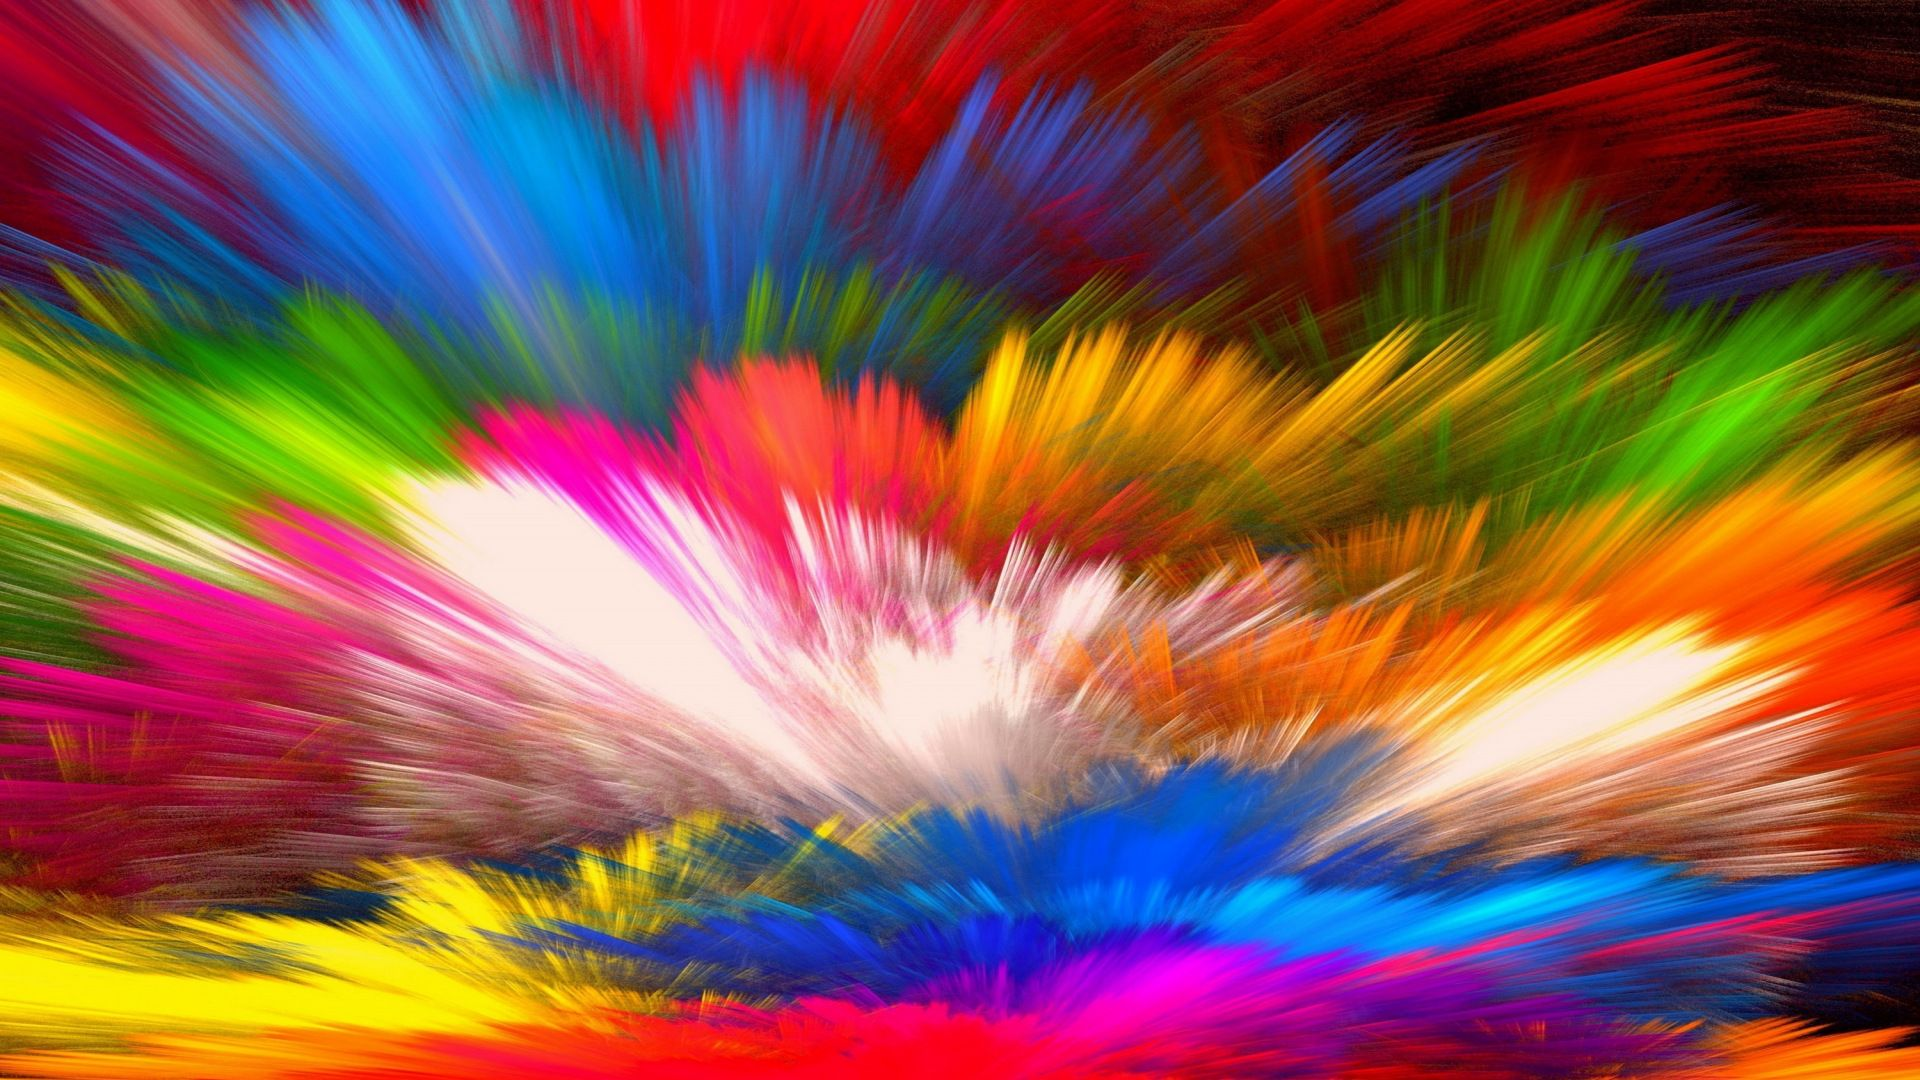 Colorful threads, abstract, 1920x1080 wallpaper Abstract